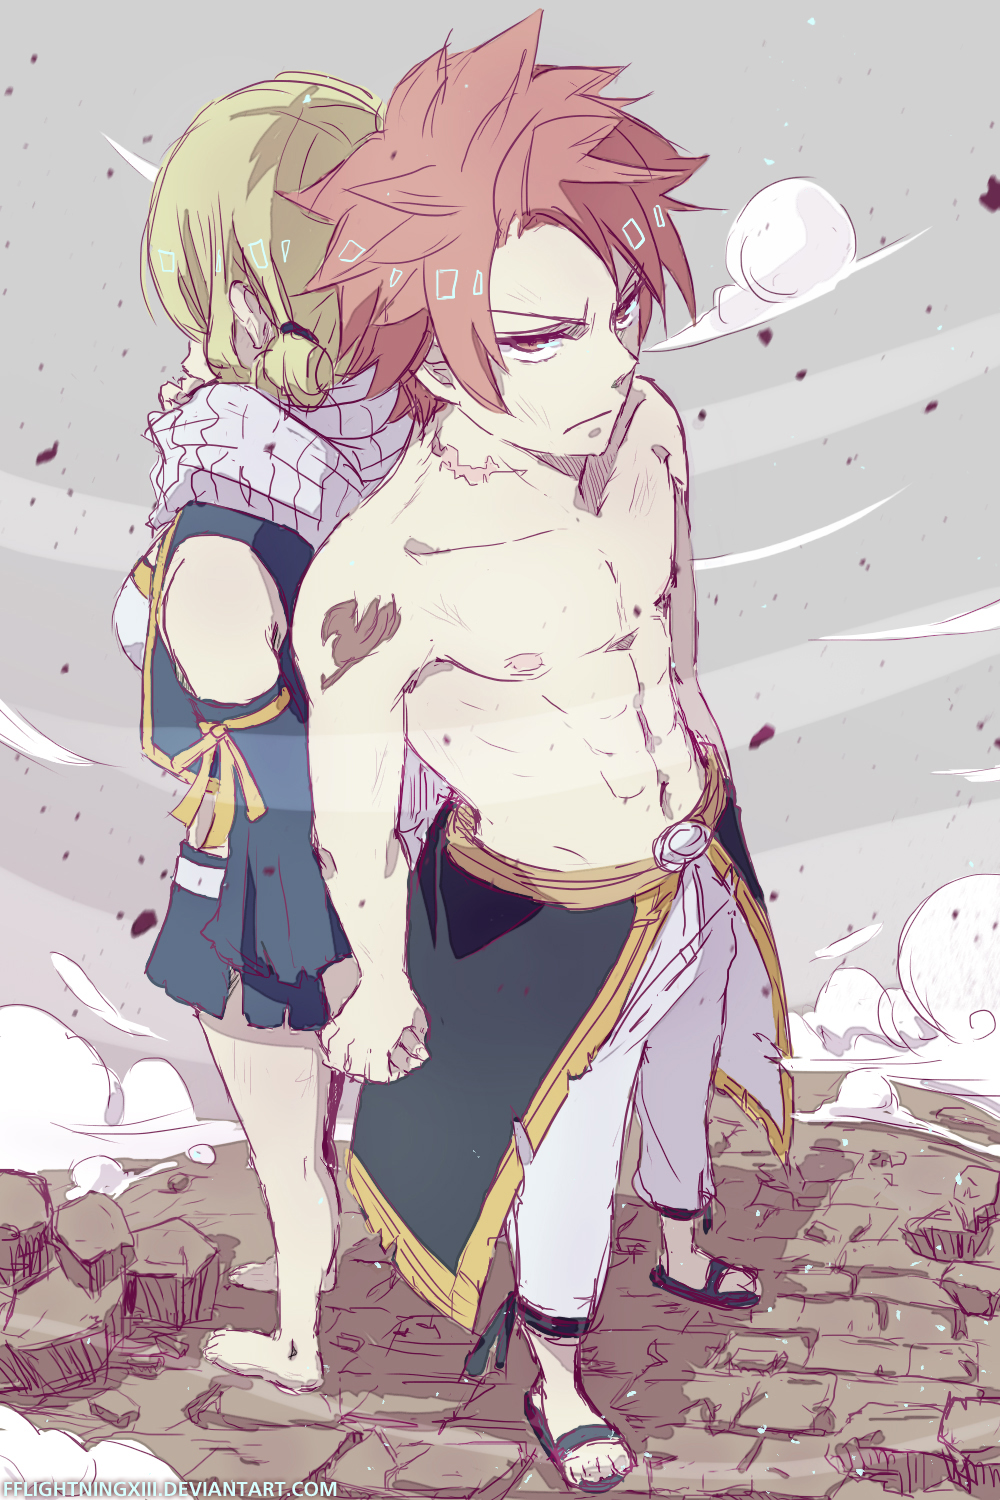 Holding your hand natsu and lucy